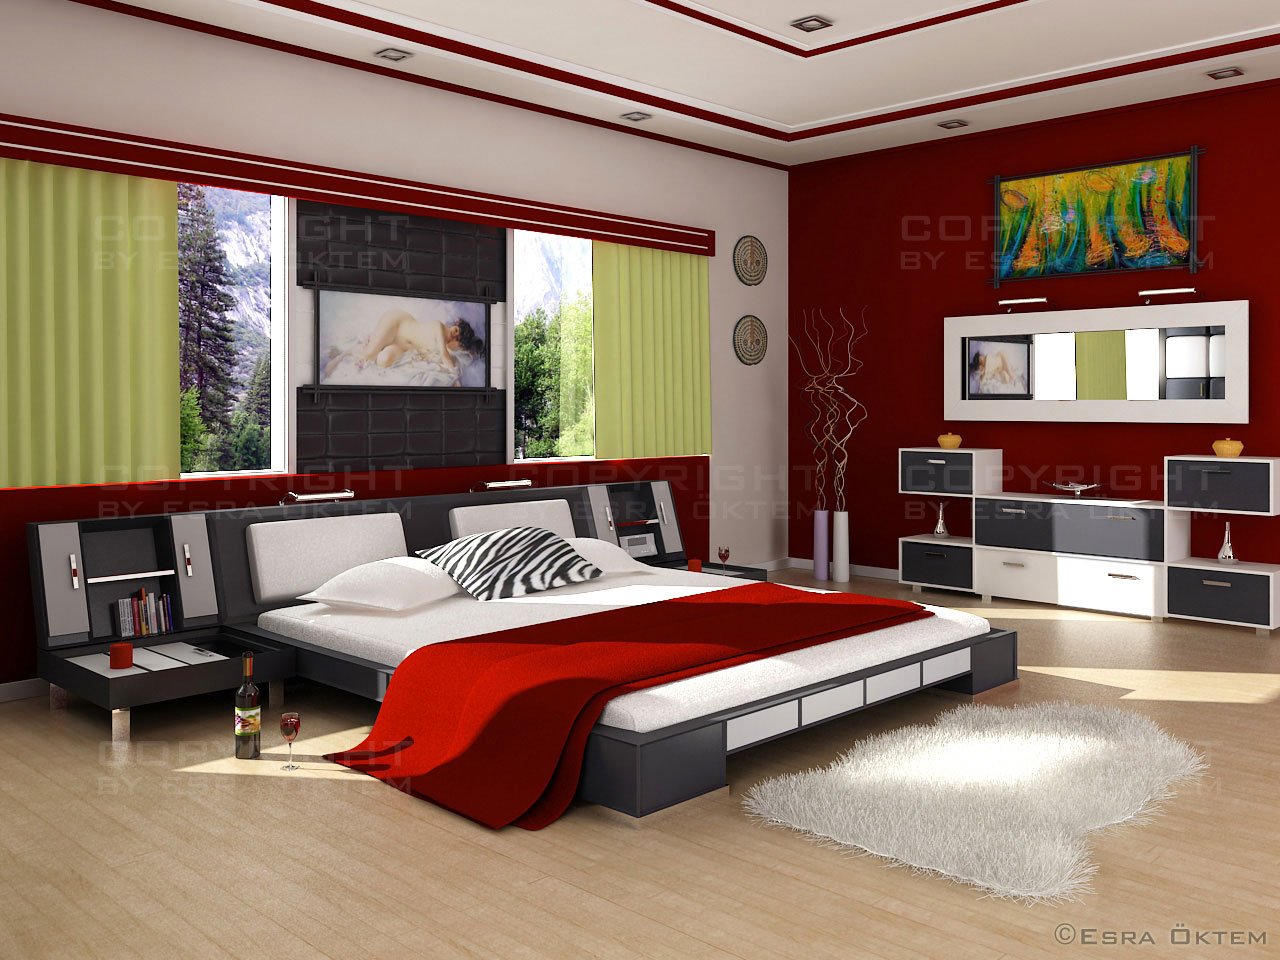 Bedroom decor themes Photo - 1